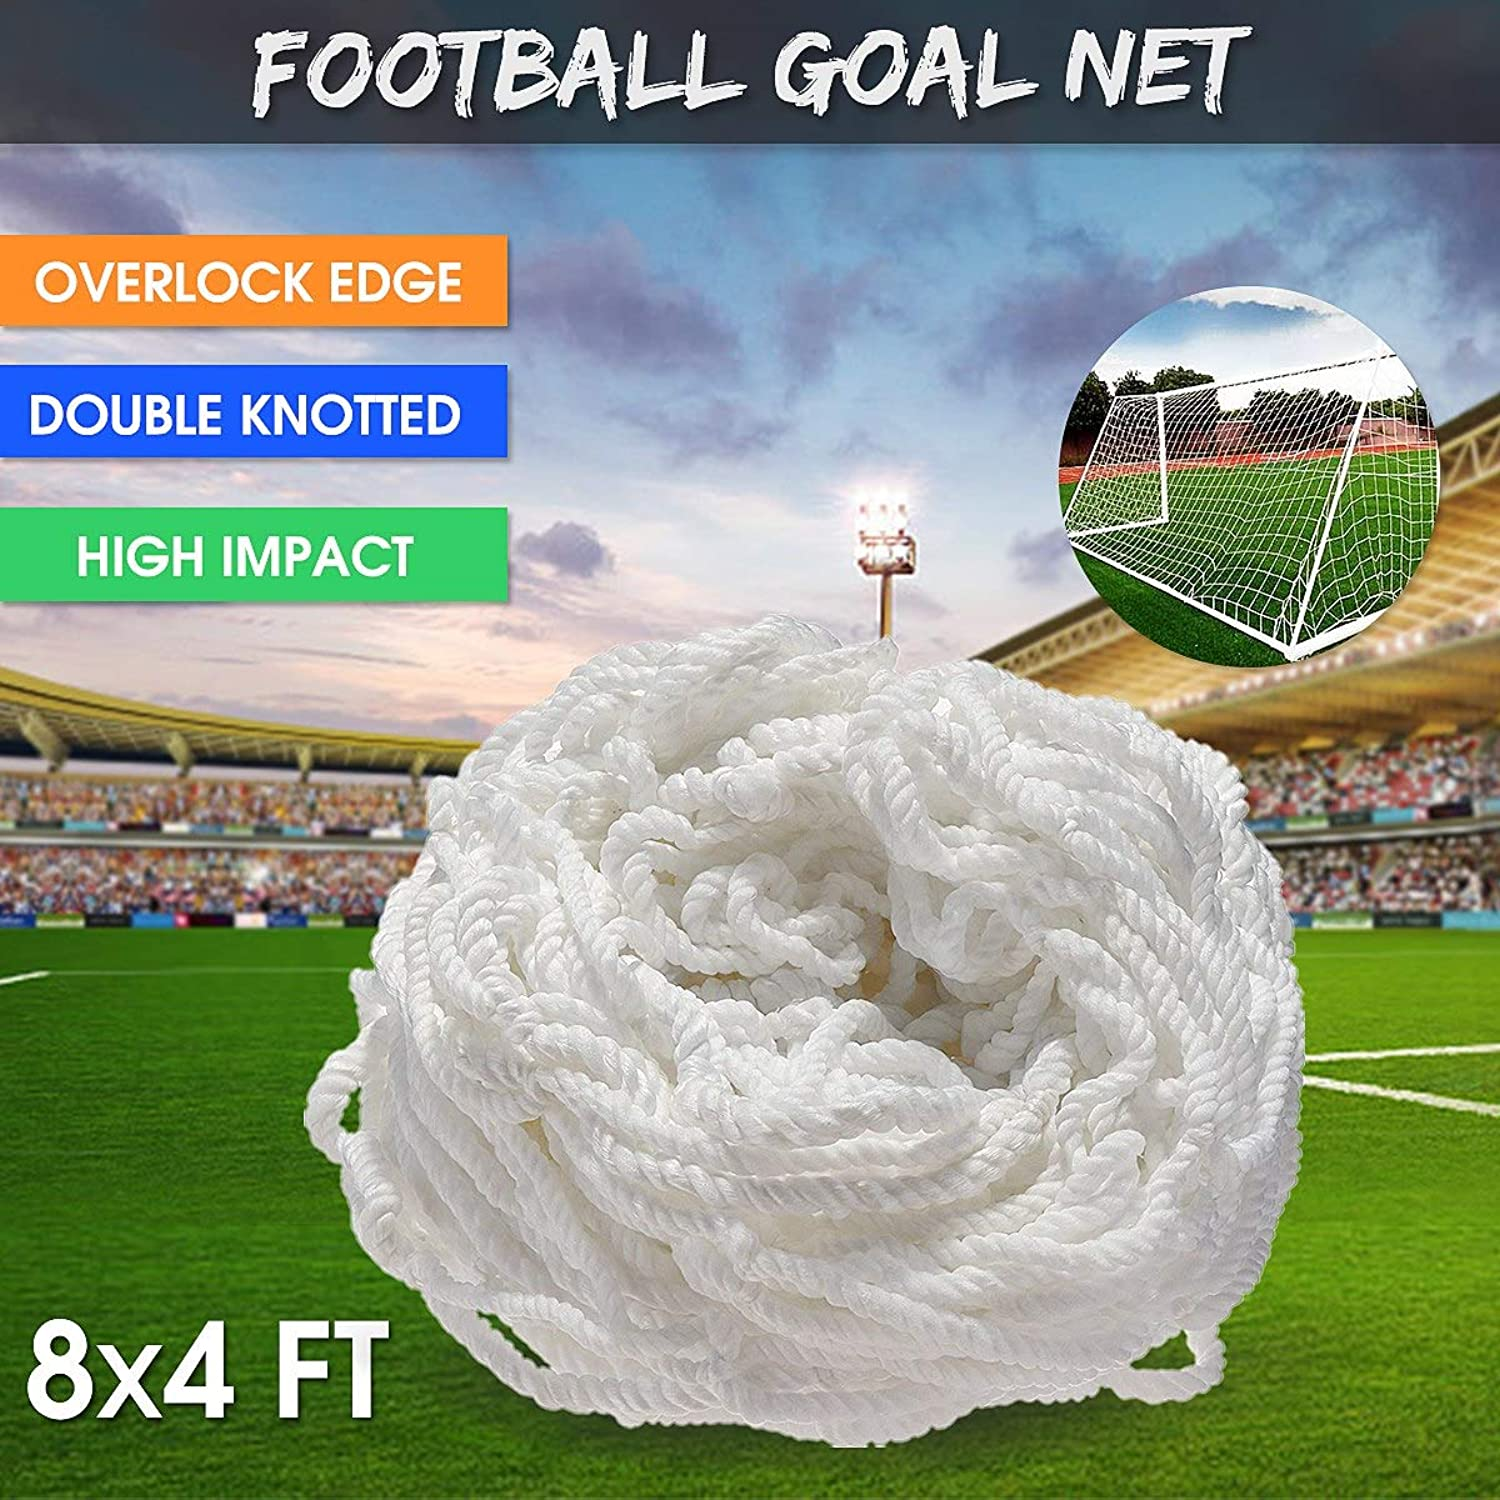 8x4FT Full Size White Football Soccer Goal Post Net for Outdoor Sports Training Match Polypropylene Flexible Double Knotted